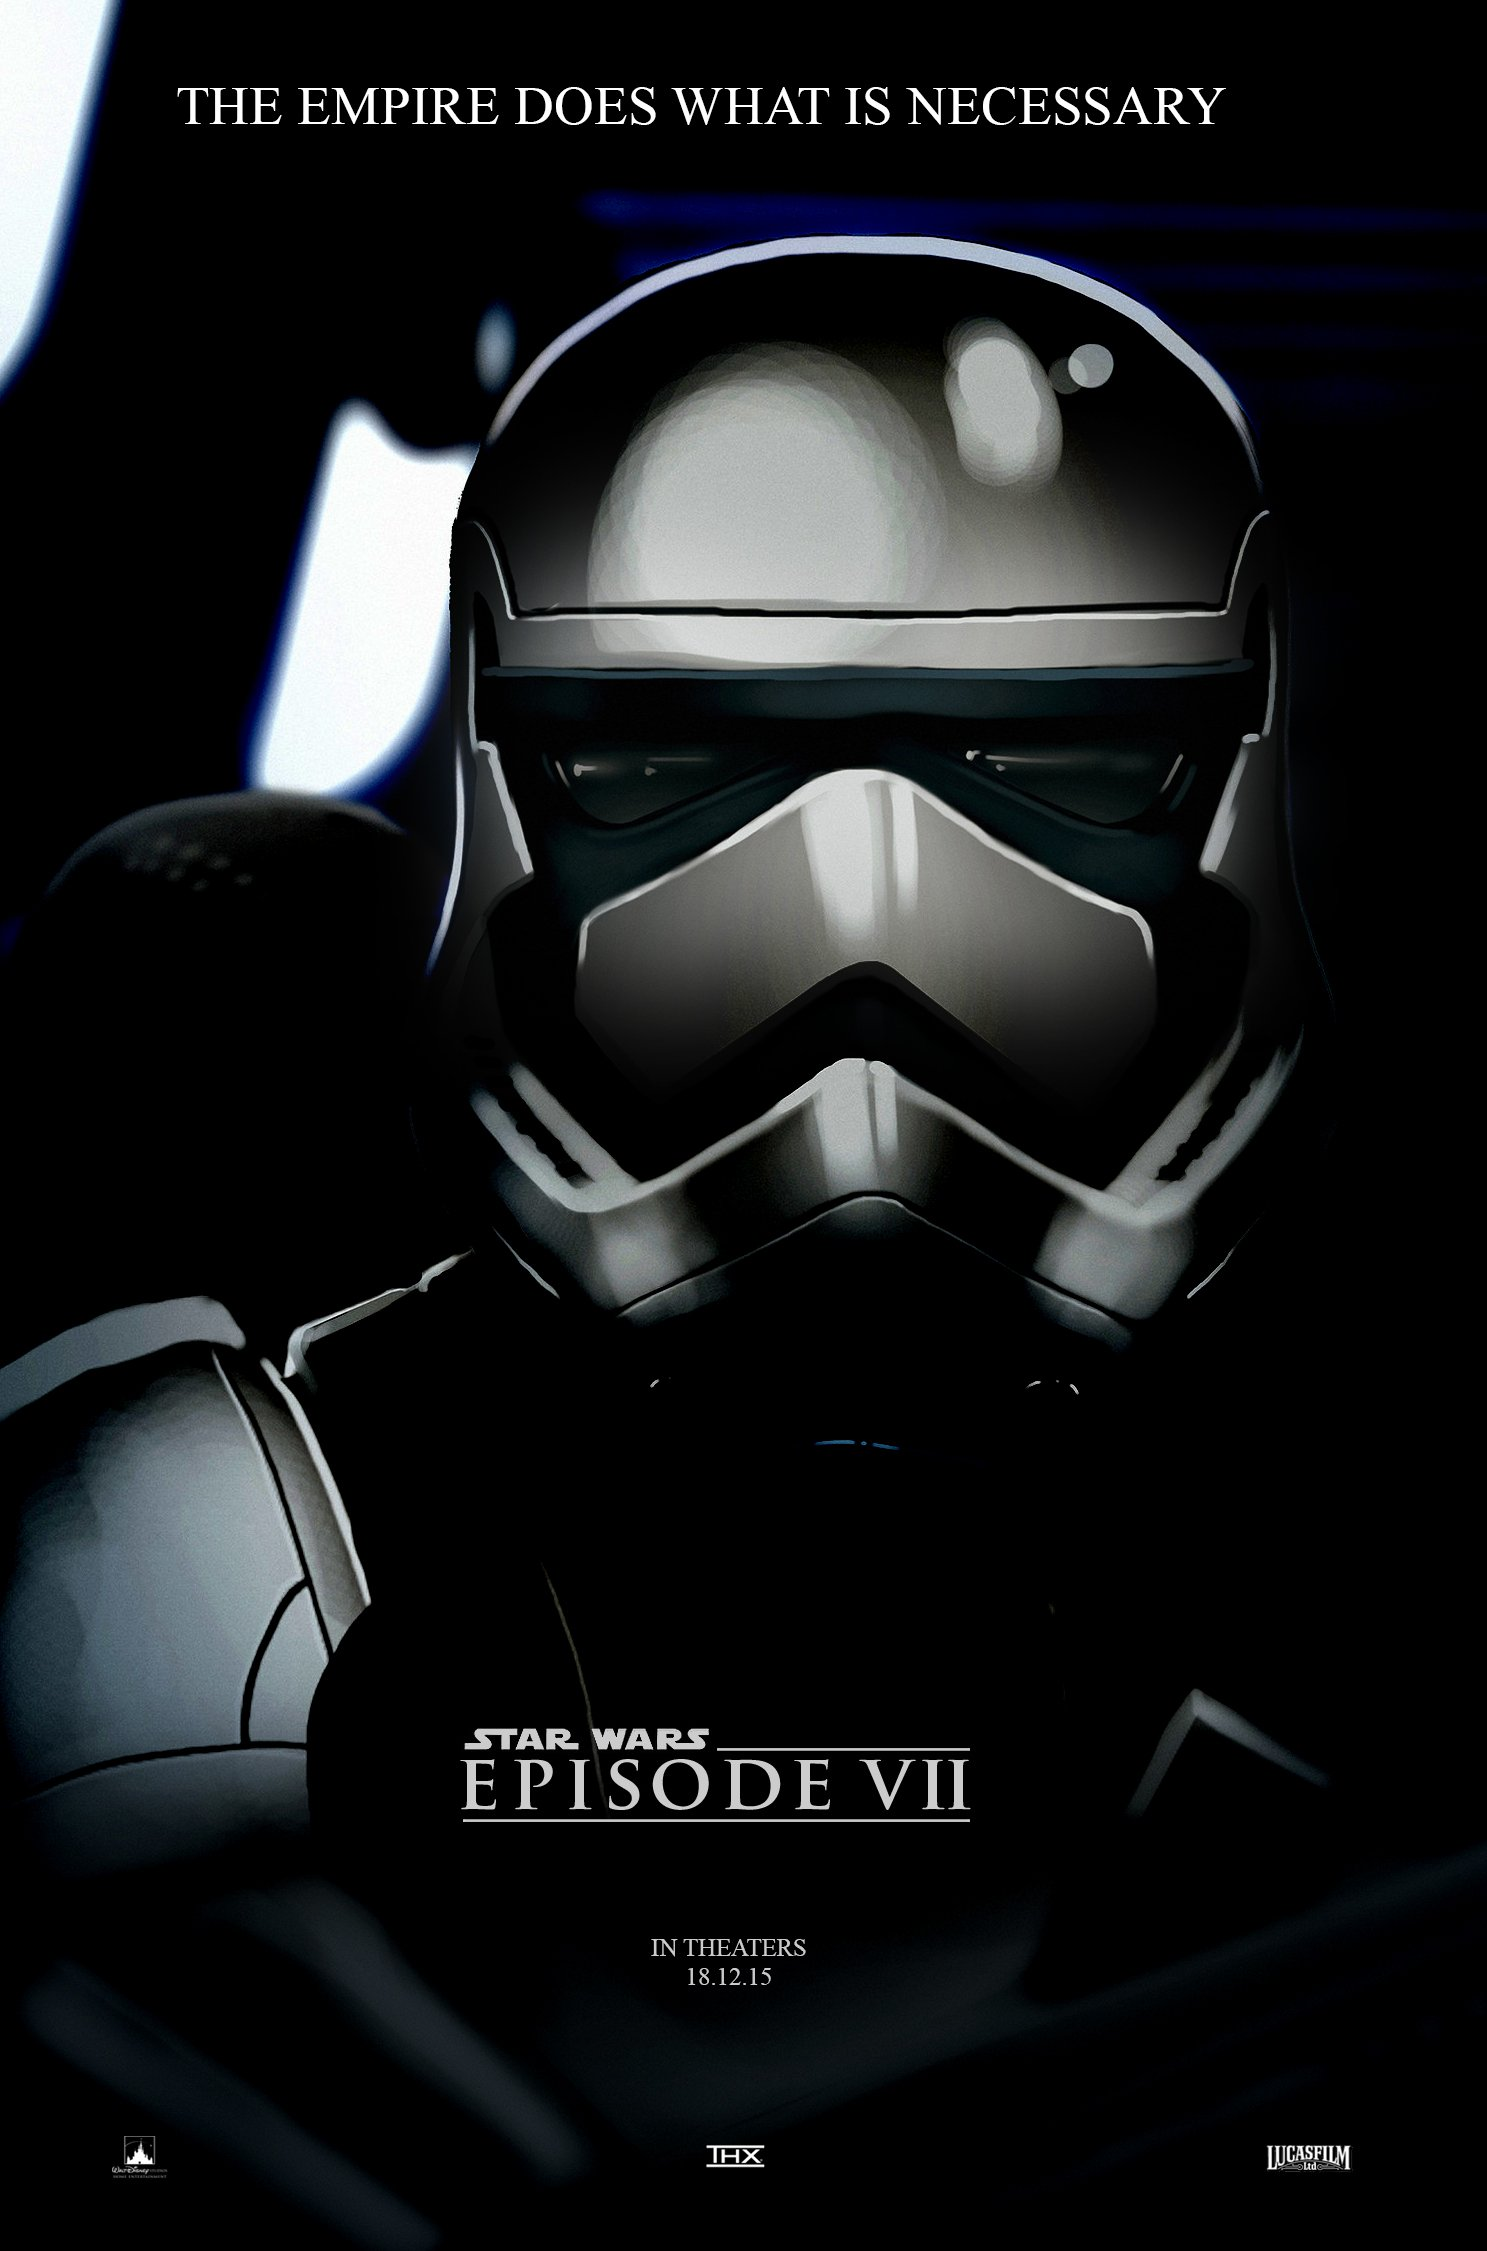 Star Wars Episode 7 Stormtrooper Poster Fan Made by Ivan Cheam